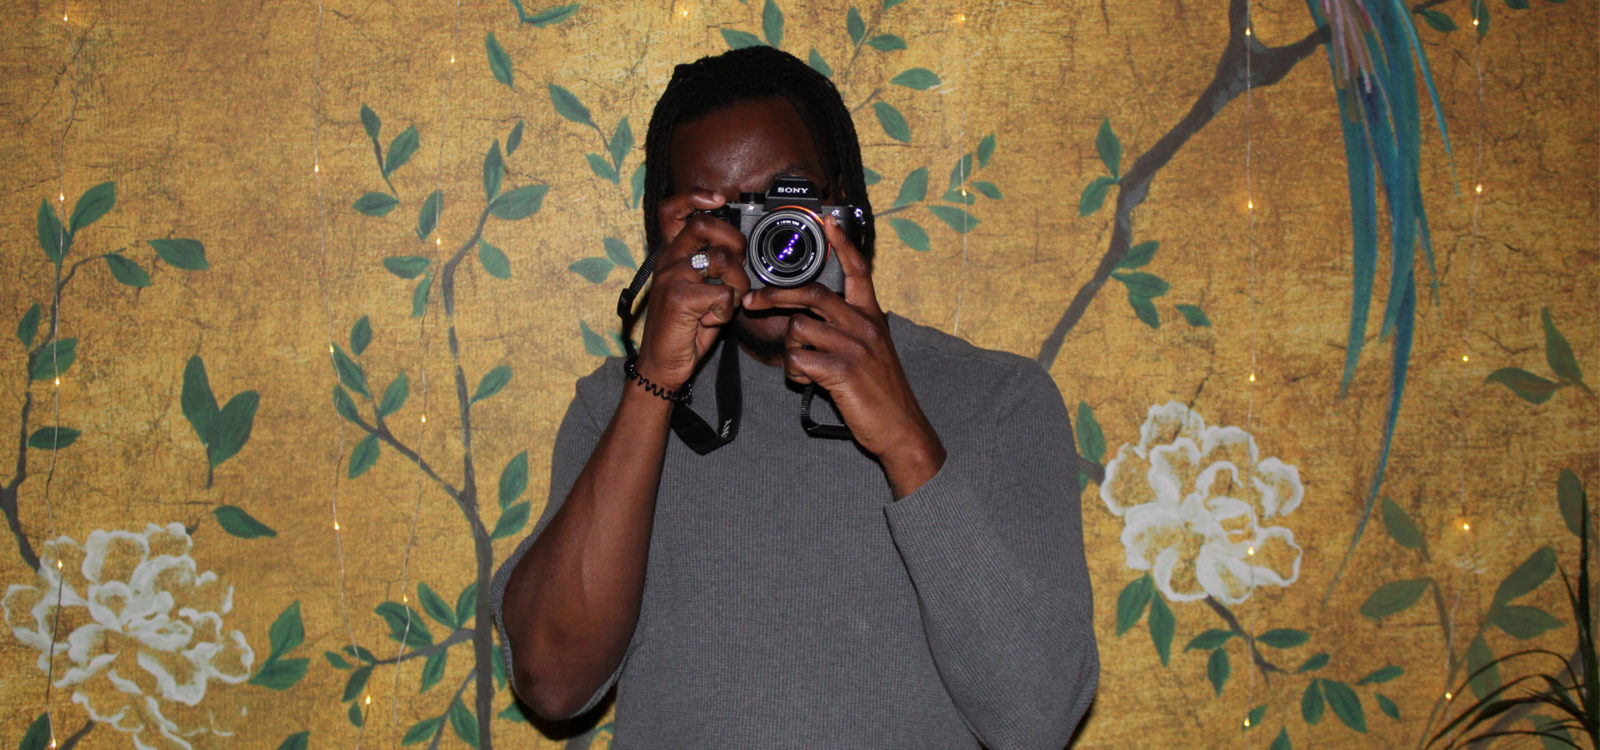 Male holding camera taking photo head on